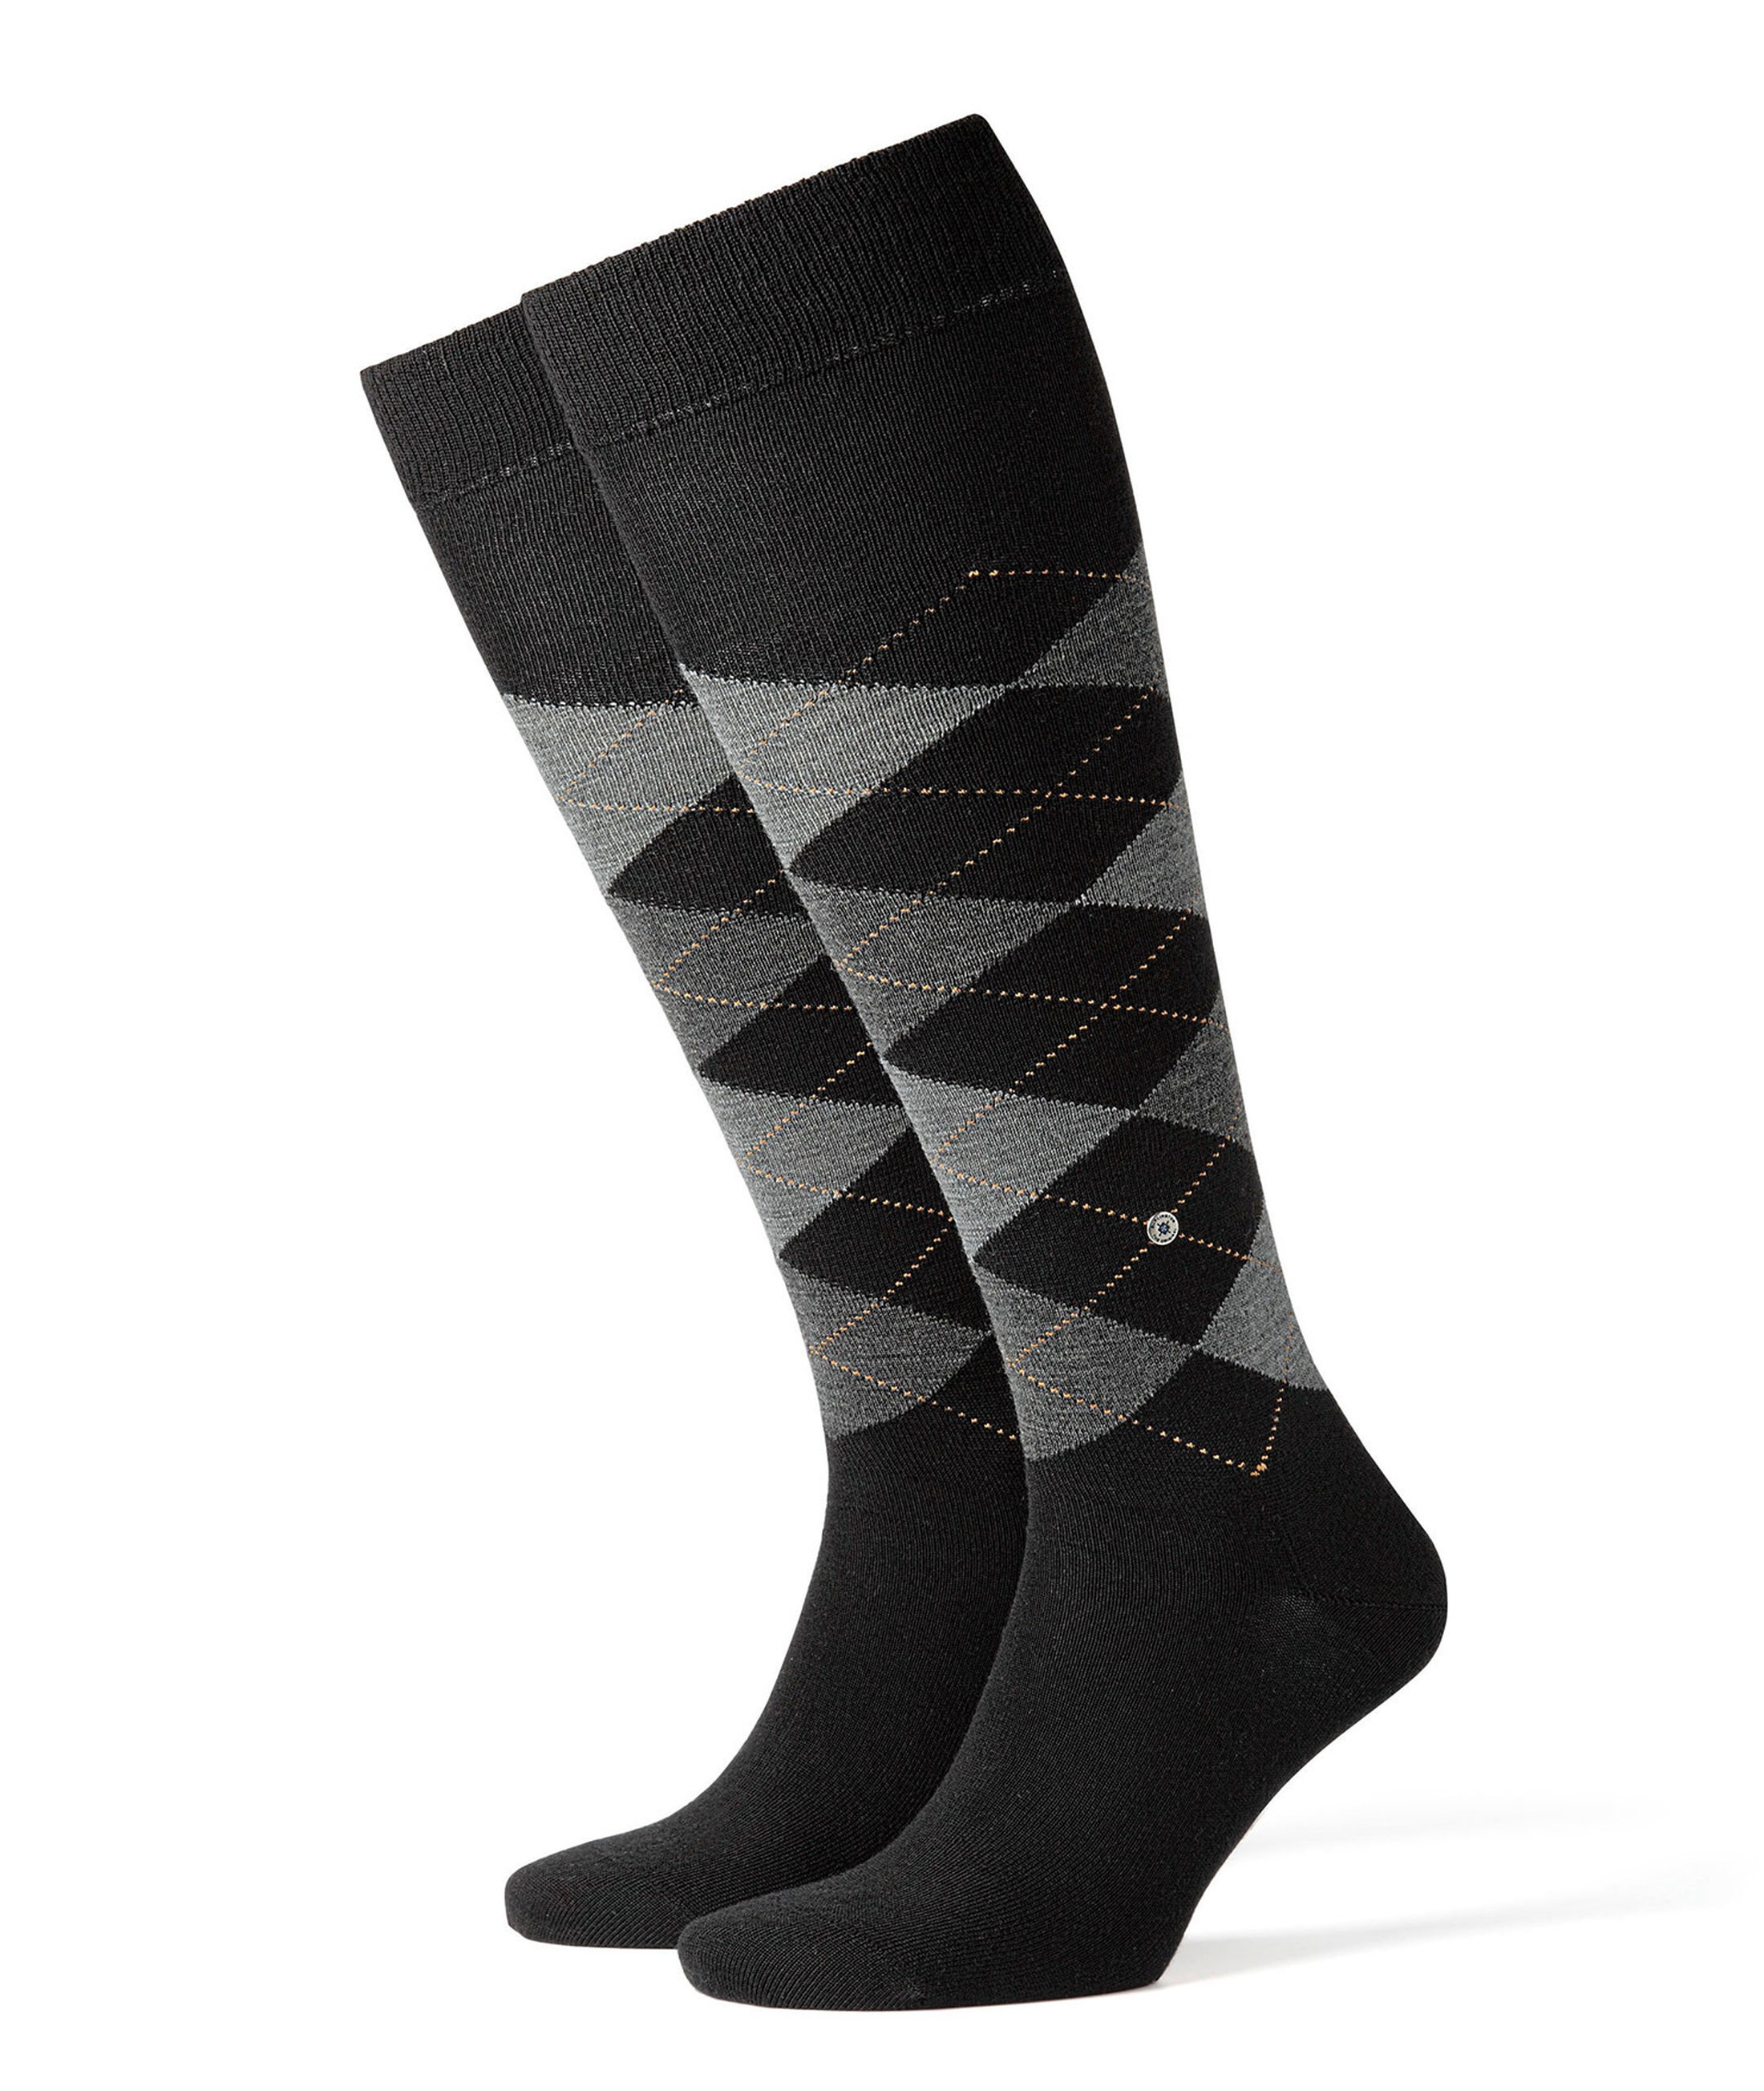 Burlington Edinburgh Knee Socks Black 3000 foto 0